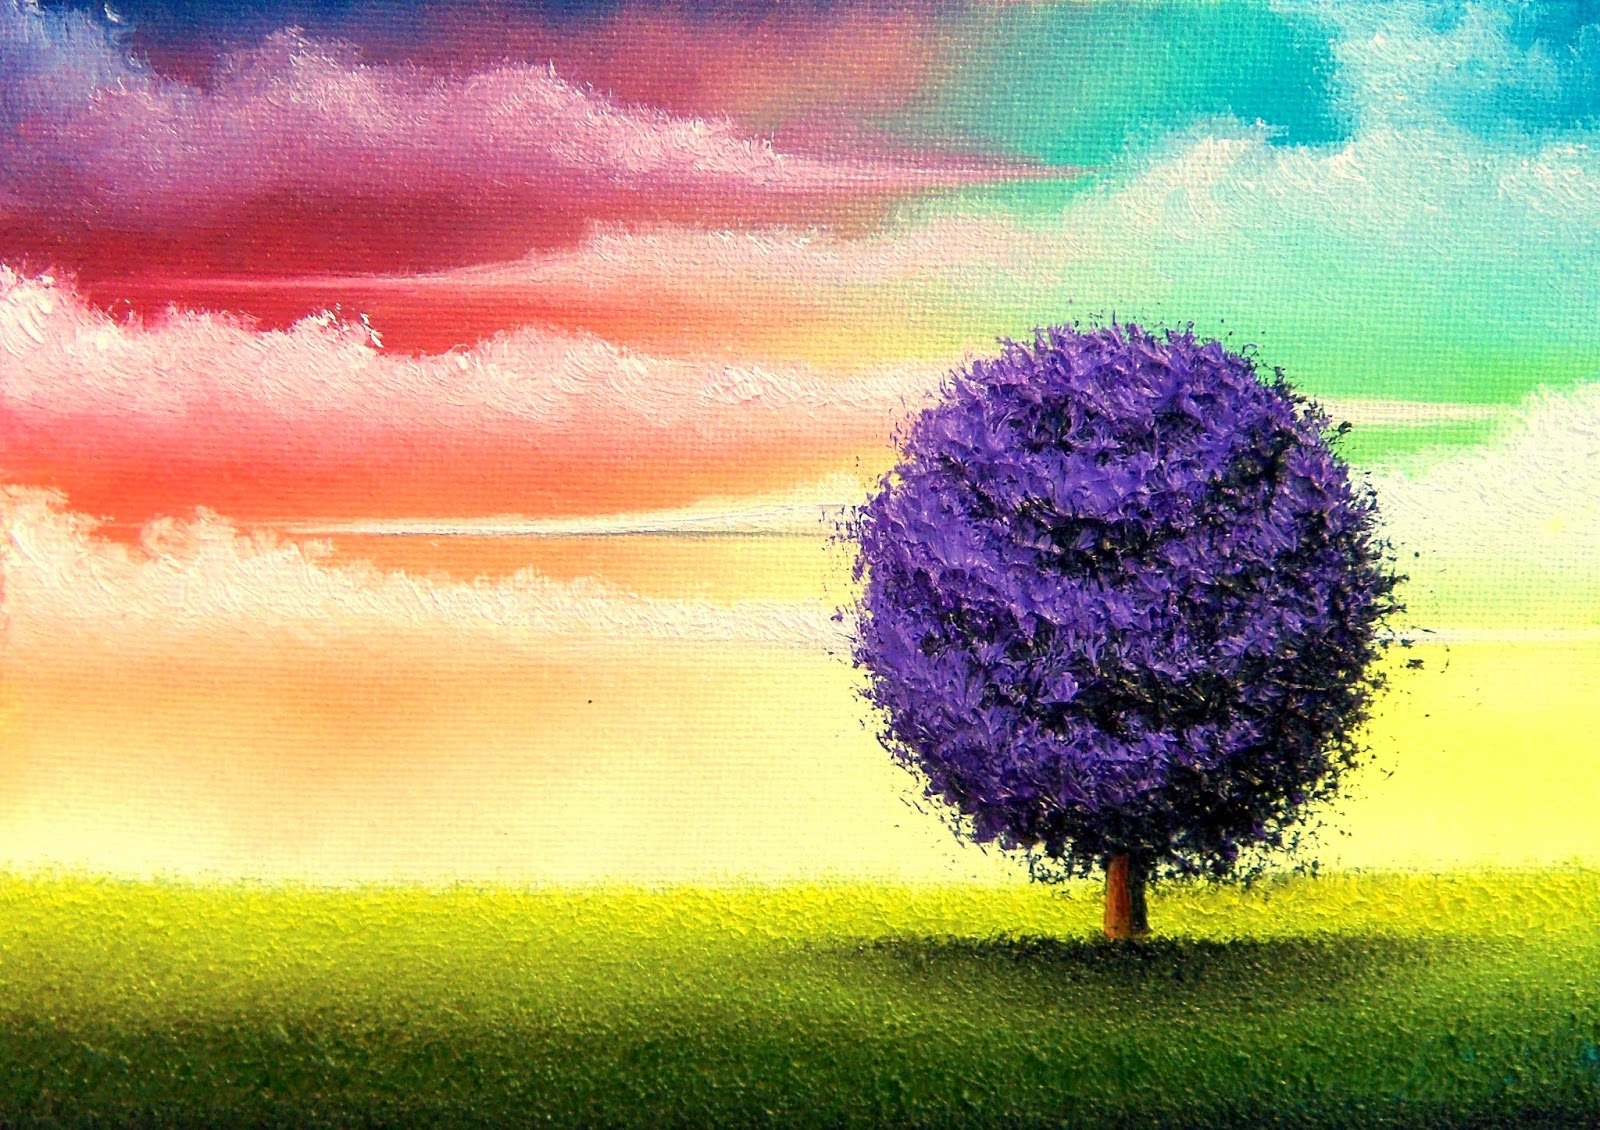 Purple Tree Oil Painting Contemporay Landscape Colorful Sunset Sky Wall Art 5 X 7 Original